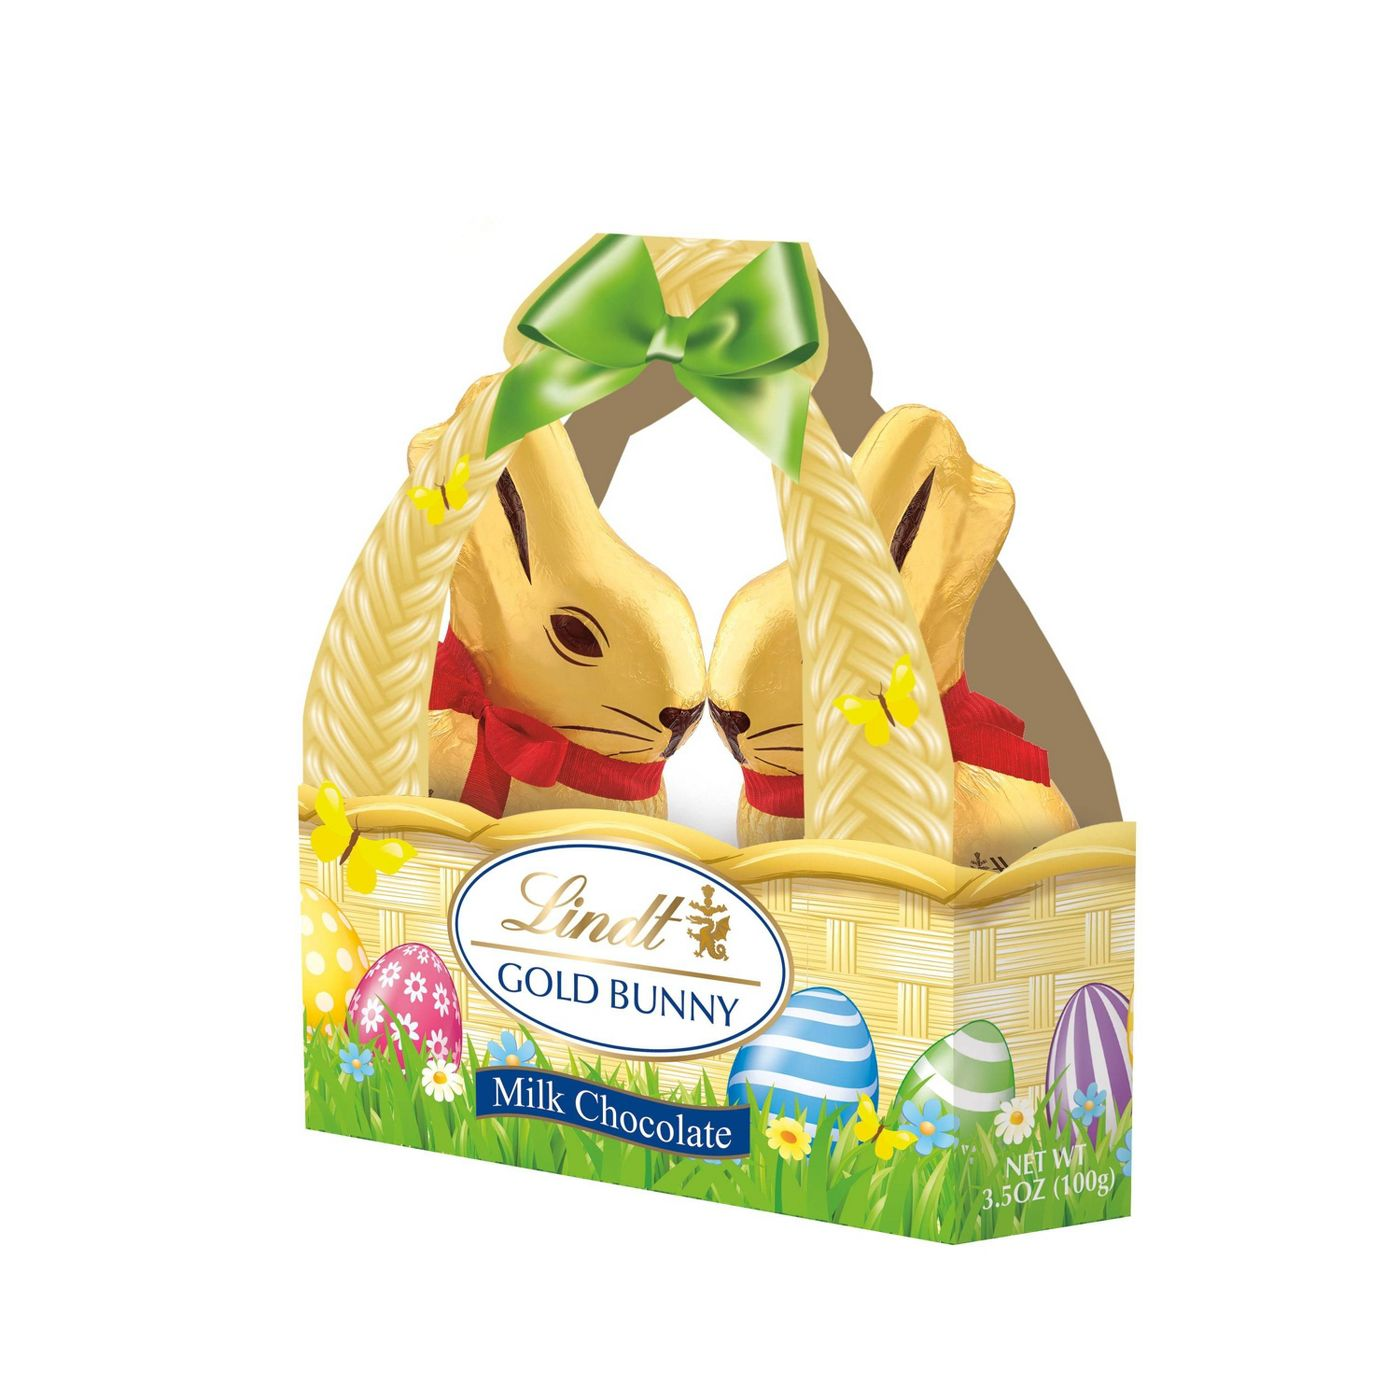 Lindt Easter Gold Bunny Milk Chocolate Basket, 3.5oz